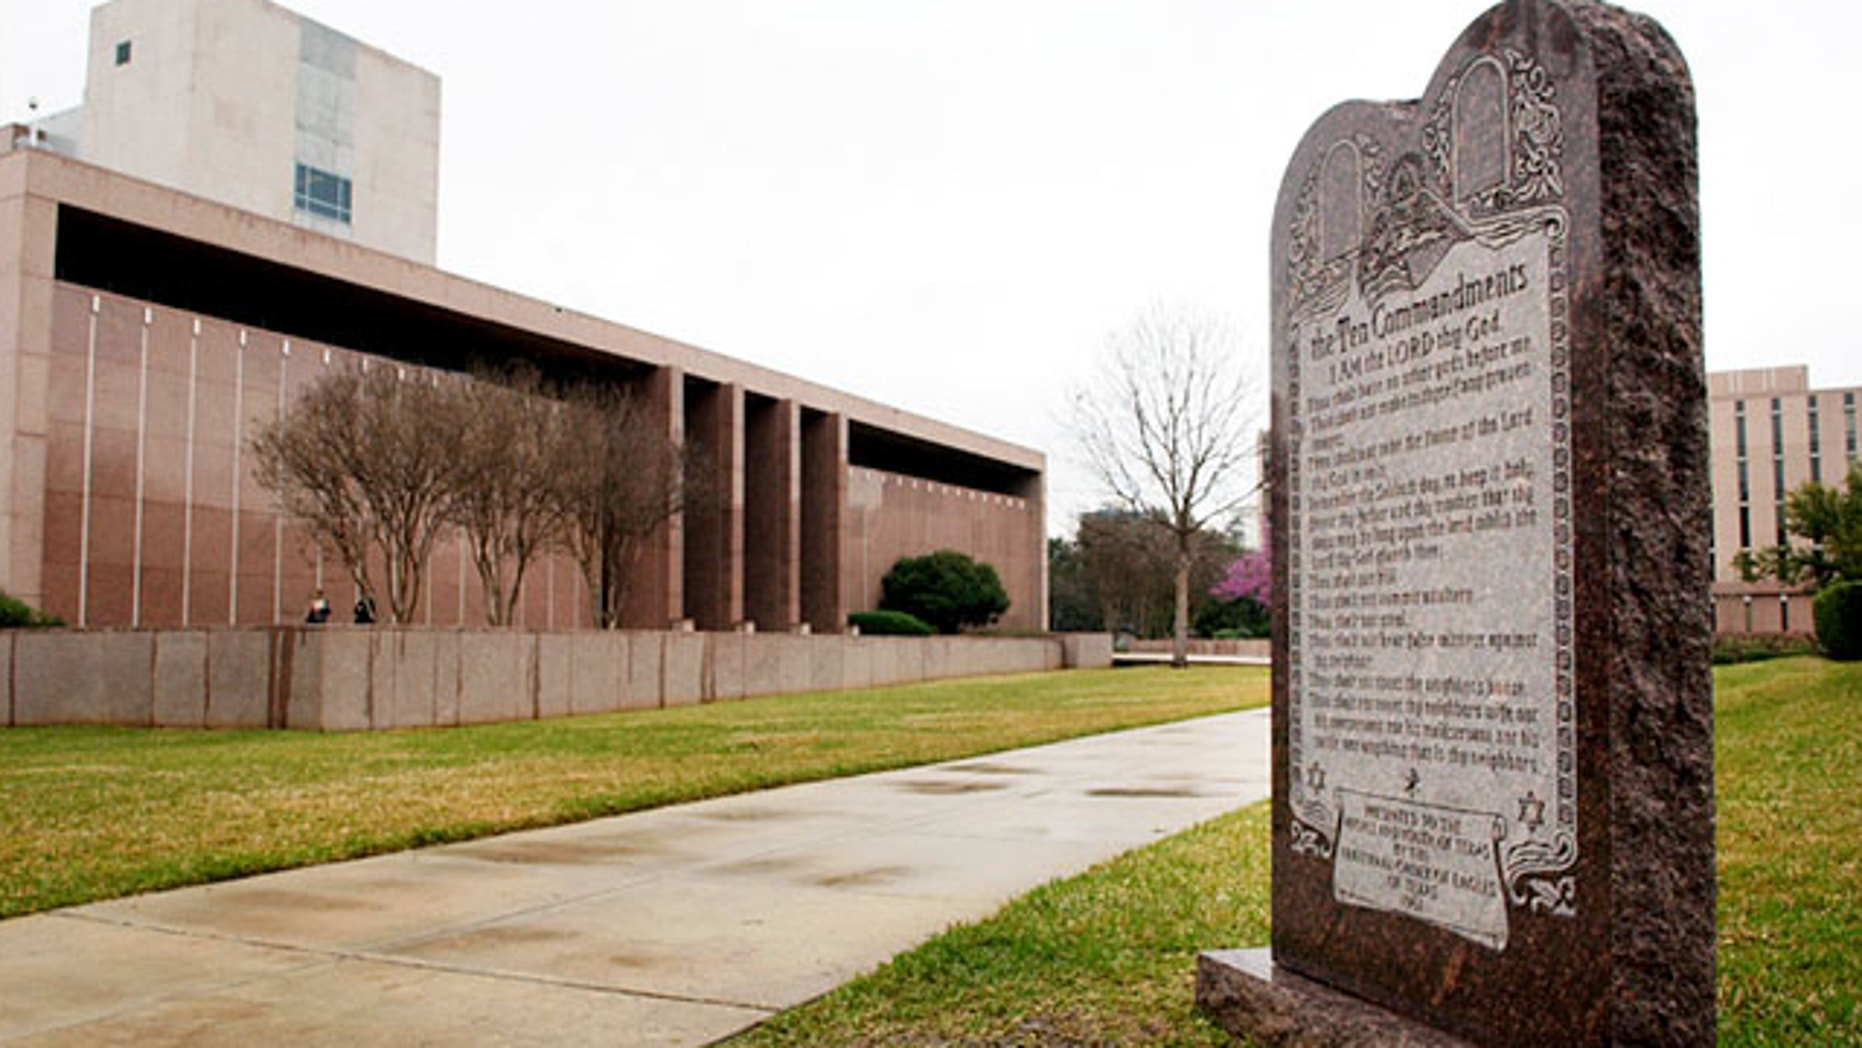 FILE: The American Civil Liberties Union of Oklahoma has filed a lawsuit seeking to force the removal of a Ten Commandments monument from state Capitol grounds in Oklahoma City.